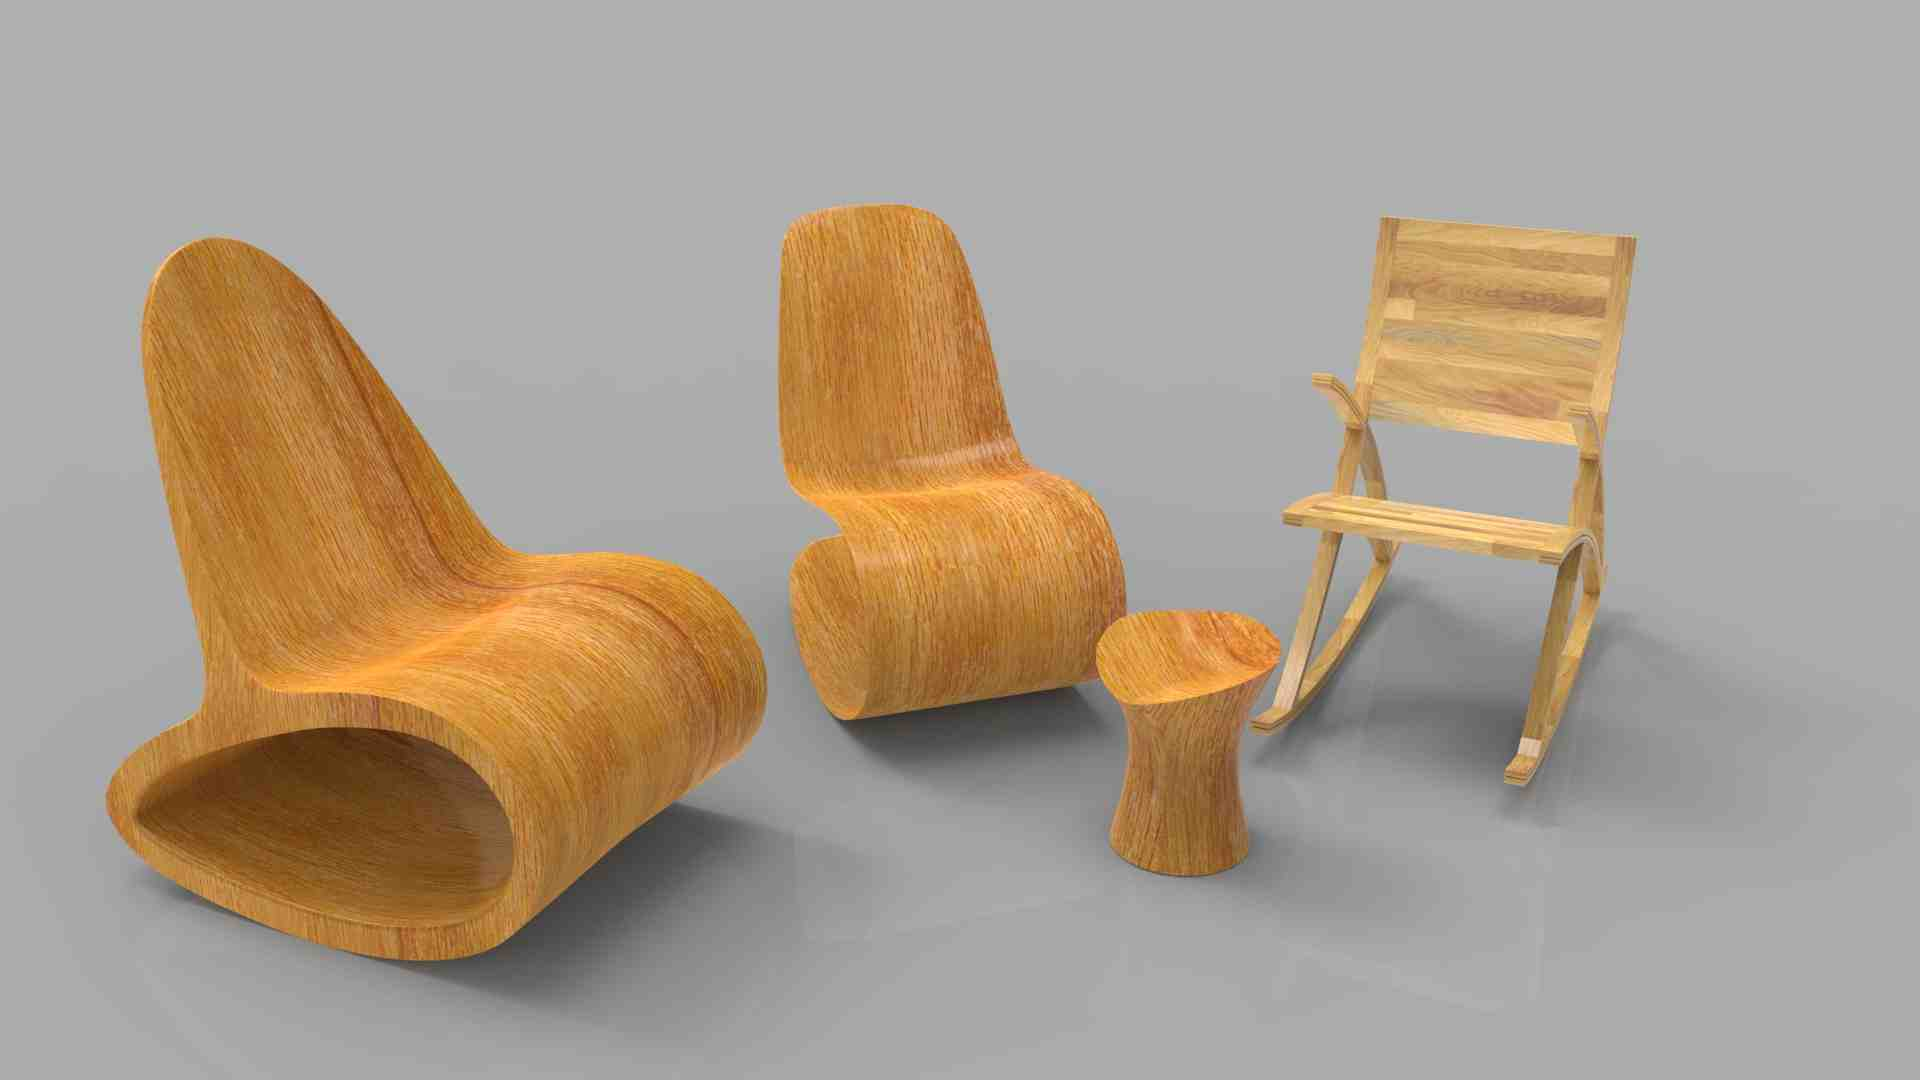 5 Interesting Facts About Wooden Chairs You Should Know